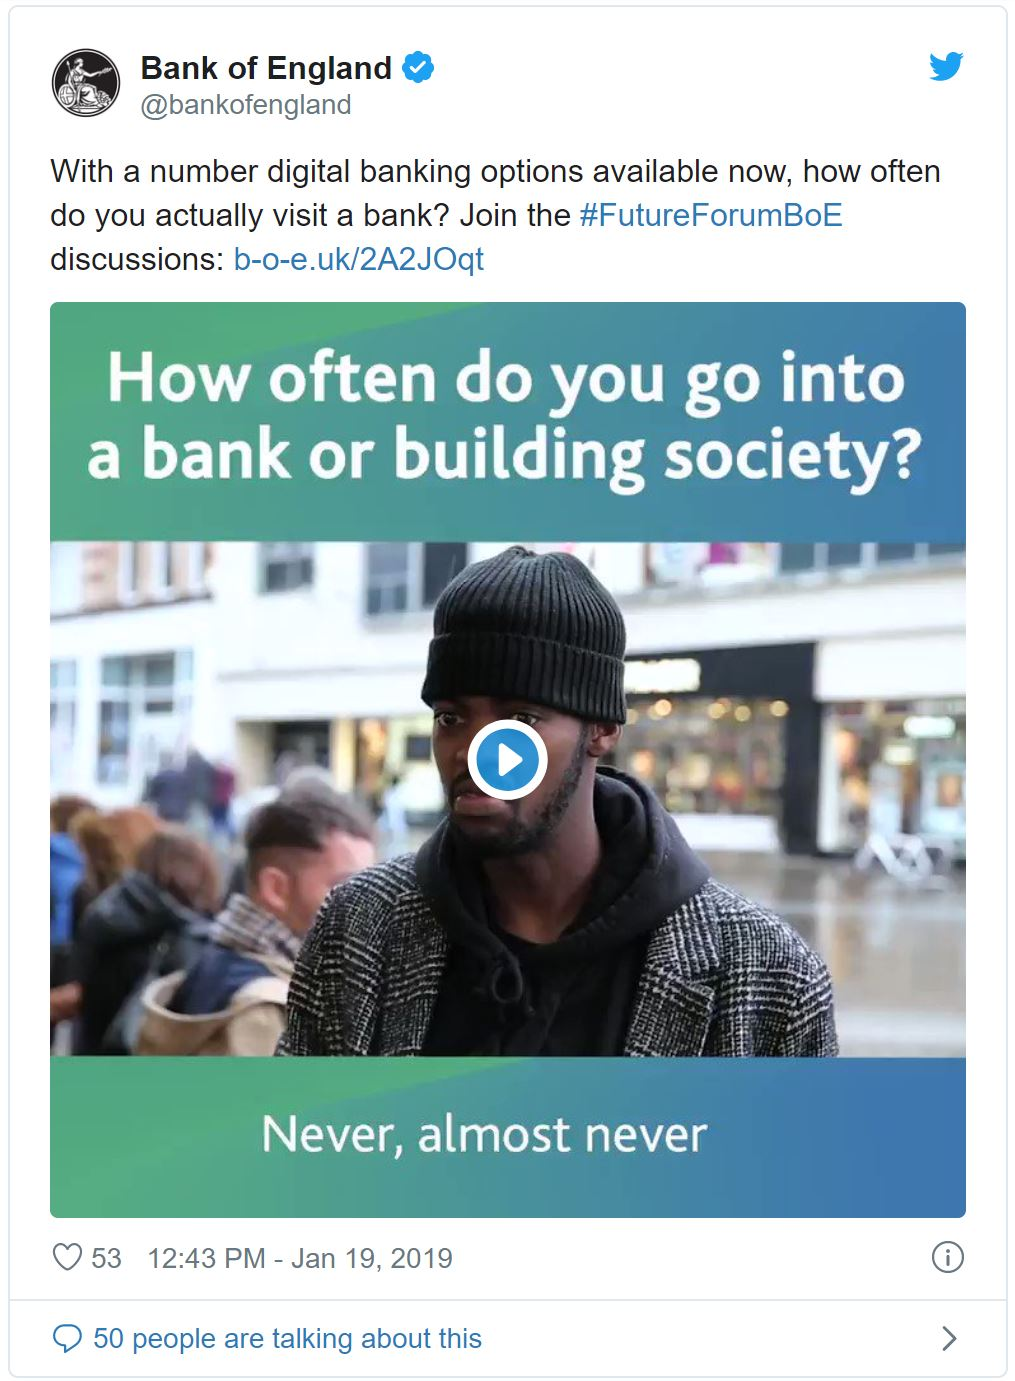 Tweet asking 'How often do you go into a bank or building society?'